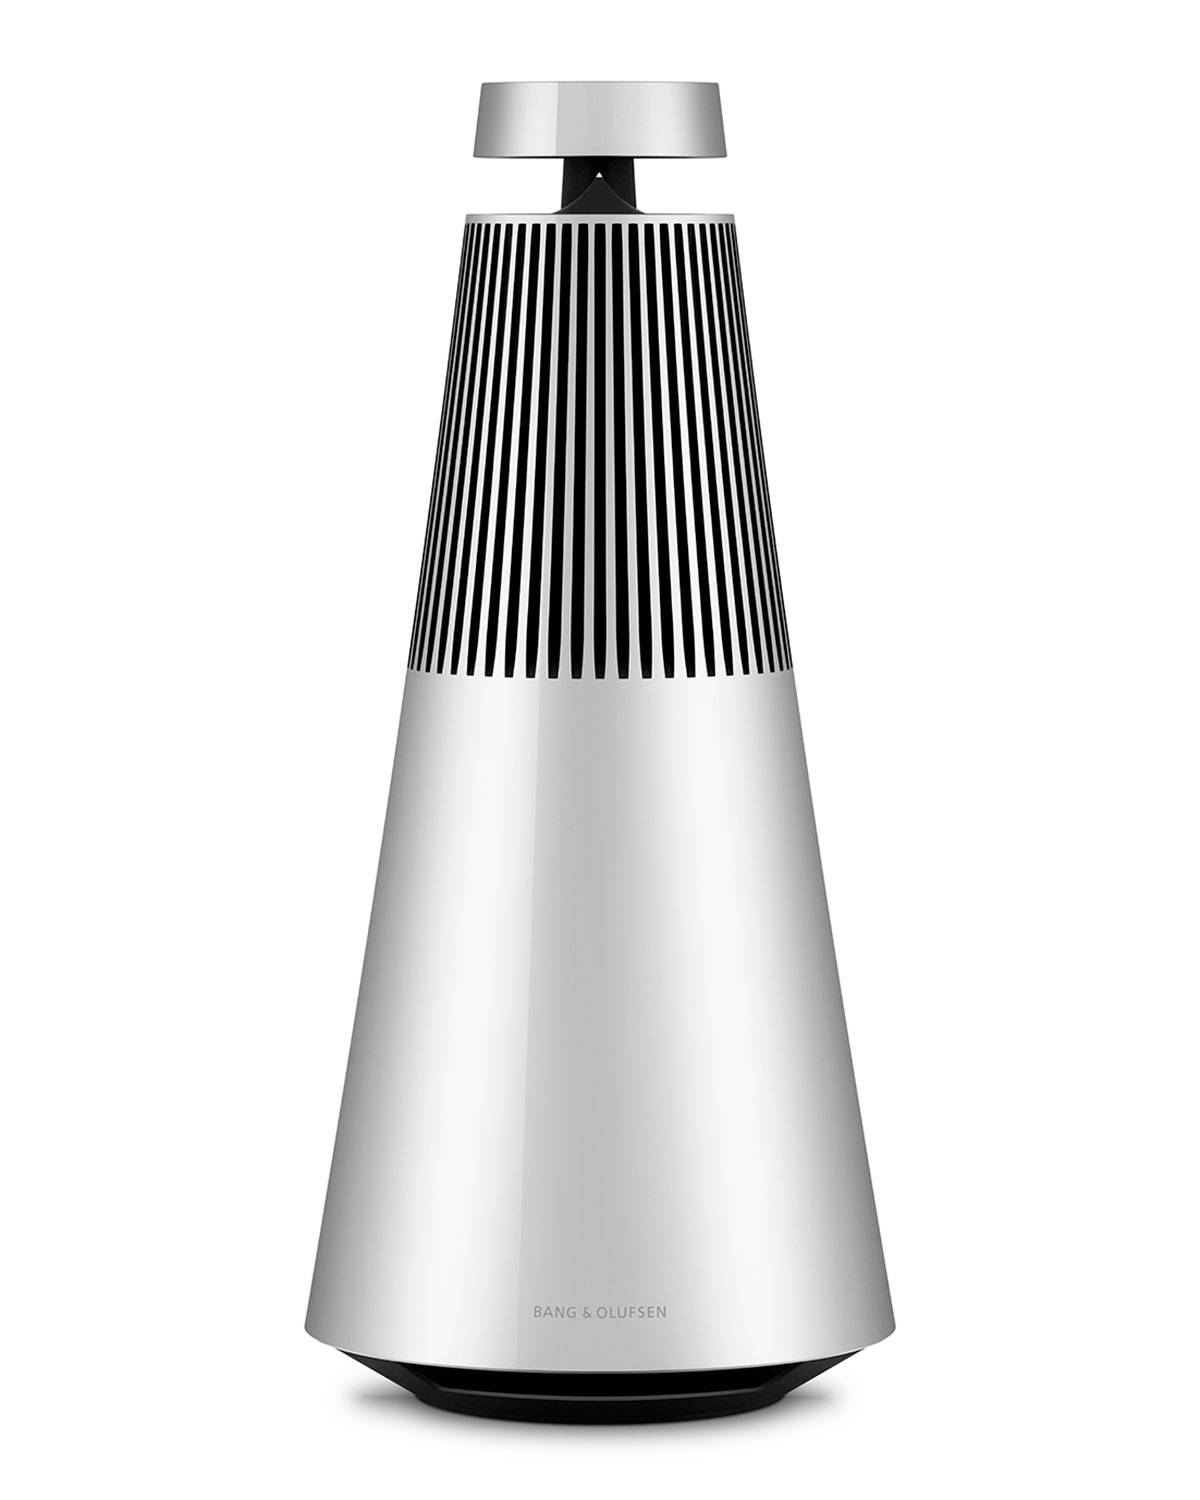 Bang & Olufsen BeoSound 2 Speaker with The Google Assistant